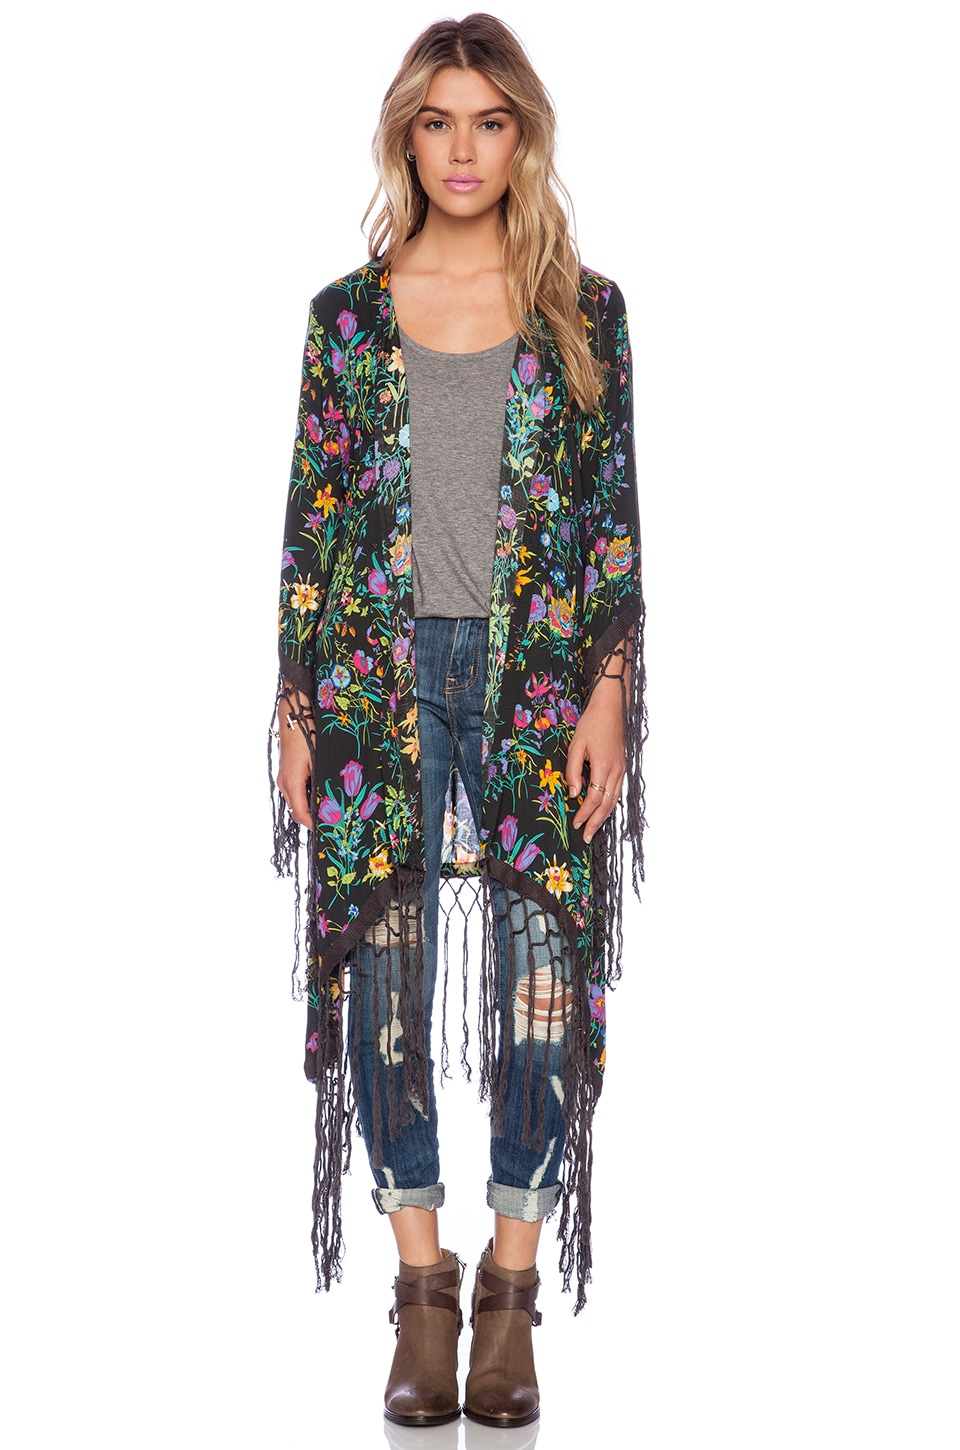 Spell & The Gypsy Collective Gypsy Queen Tassel Kimono en Black Floral